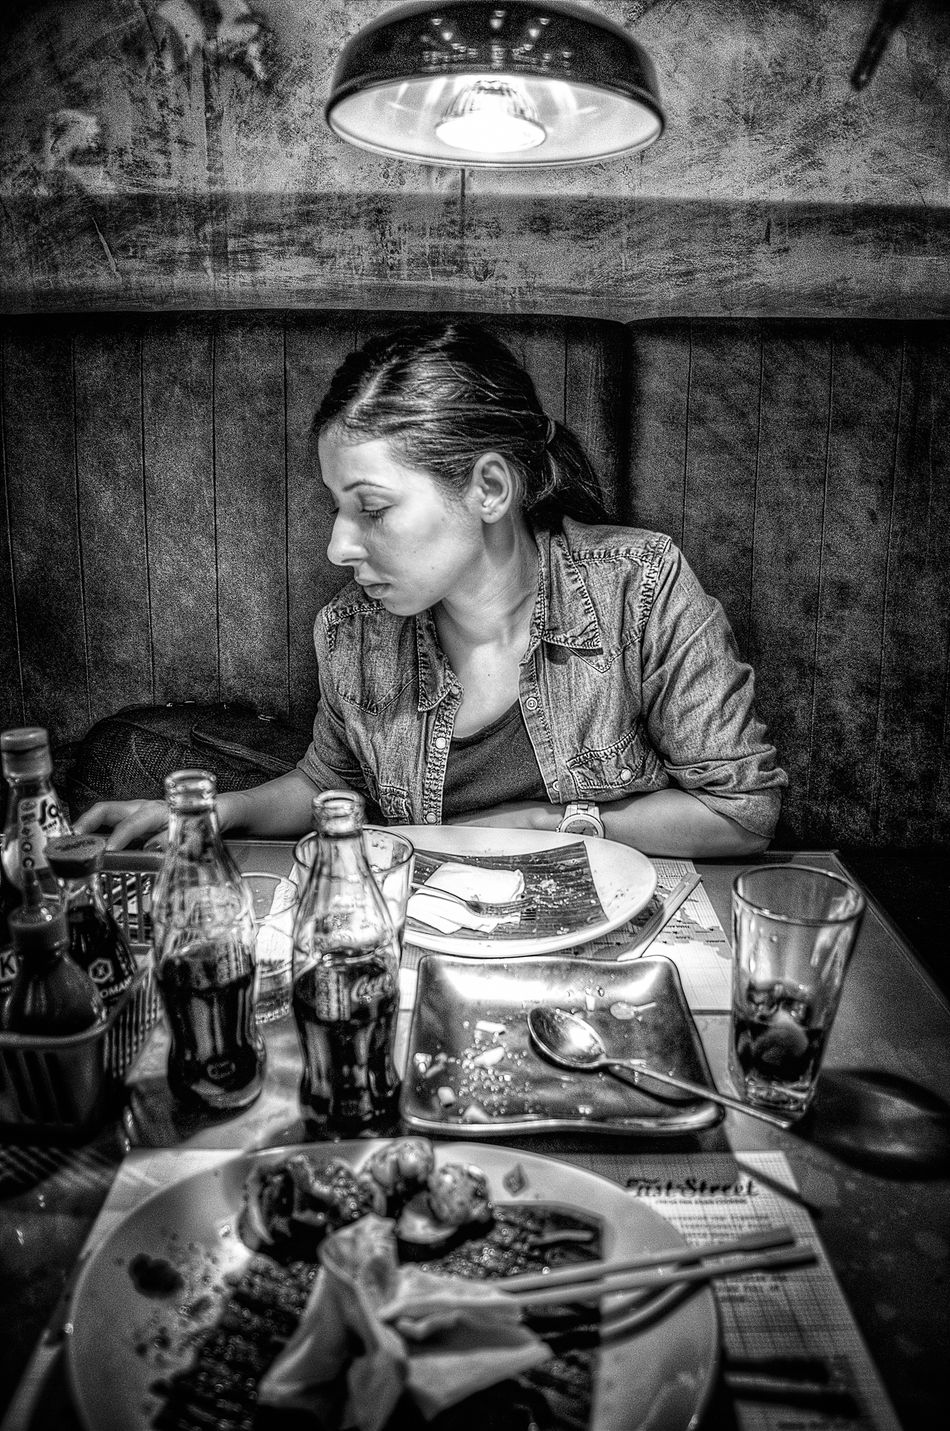 Black & White Blackandwhite Candid Candid Portraits Close-up Dinner Focus On Foreground Indoors  Lamp Light And Shadow Marcokleinphotography One Person Table Woman The Portraitist - 2016 EyeEm Awards Mobile Conversations